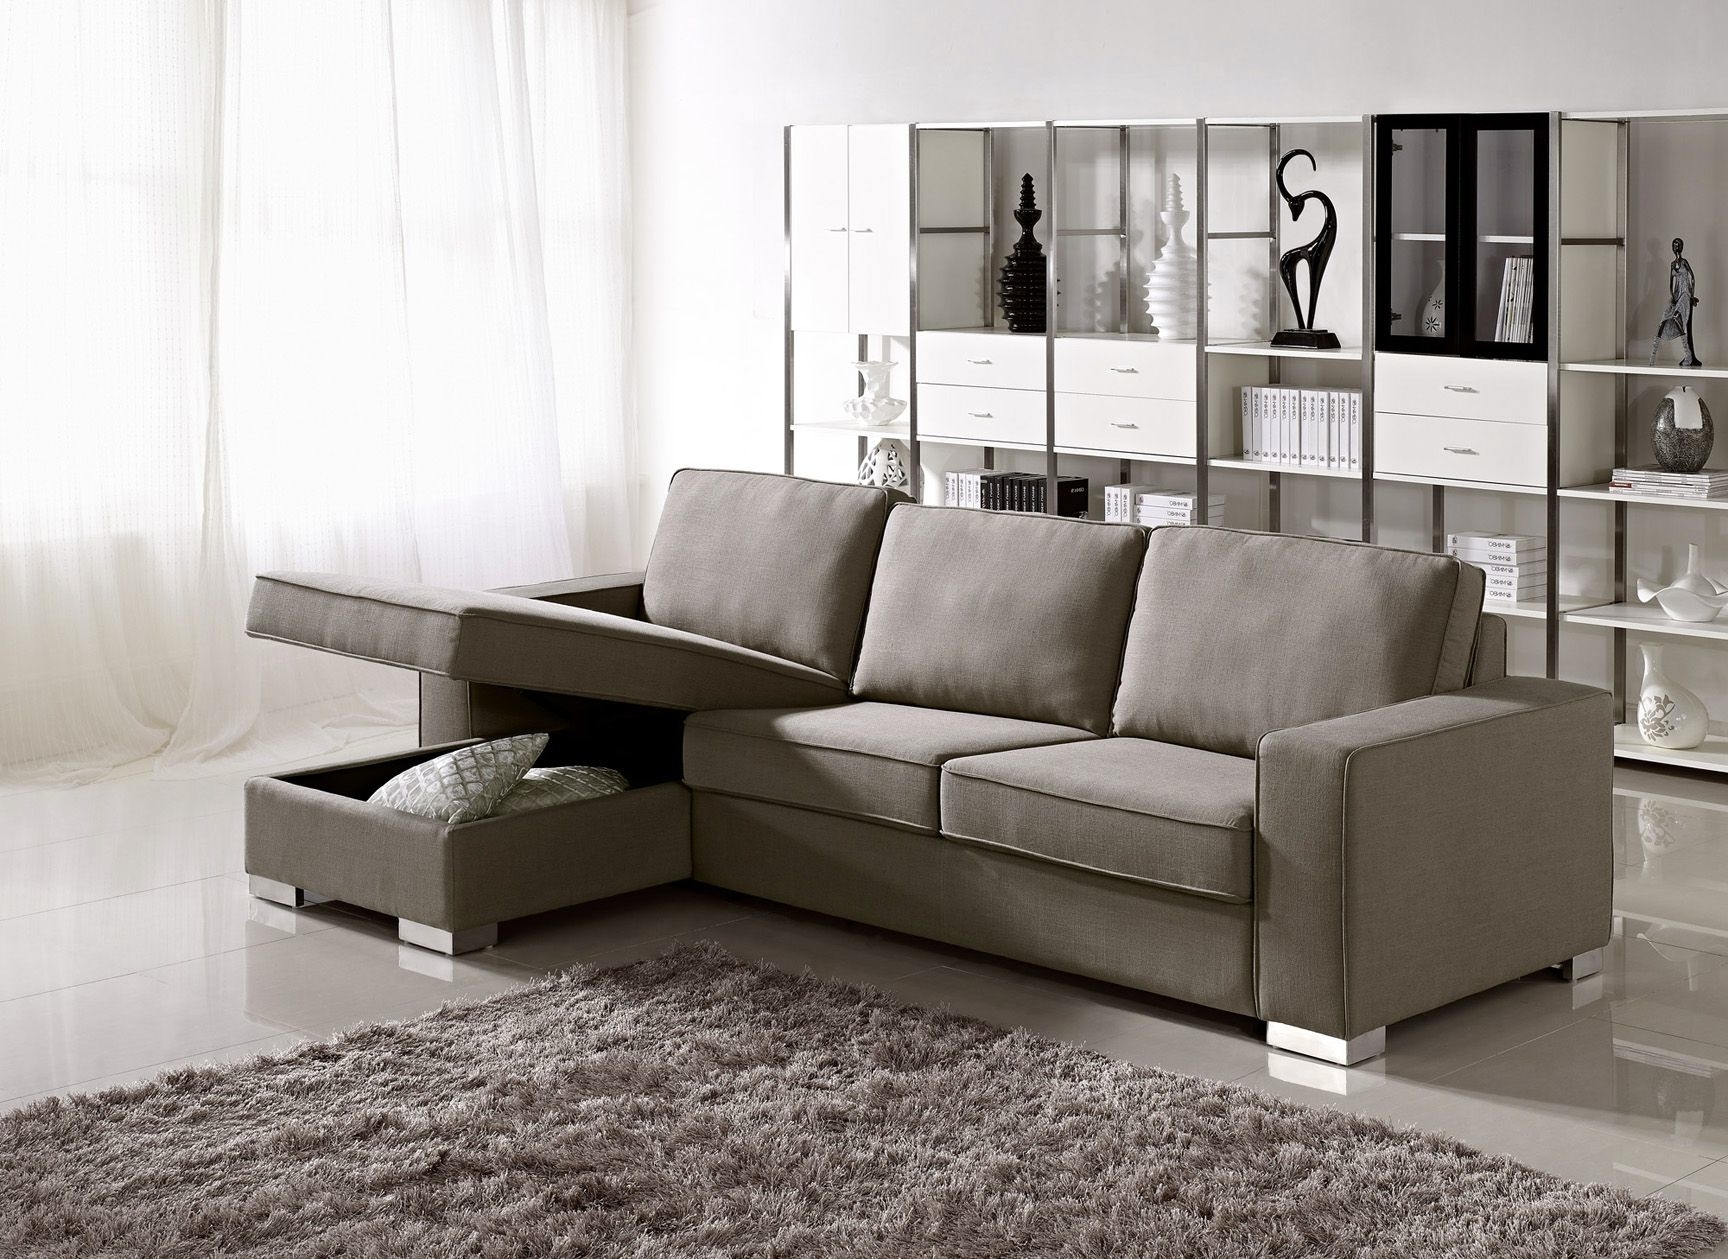 Current Amazing High Quality Sectional Sofas 52 About Remodel Sectional With High Quality Sectional Sofas (View 4 of 15)